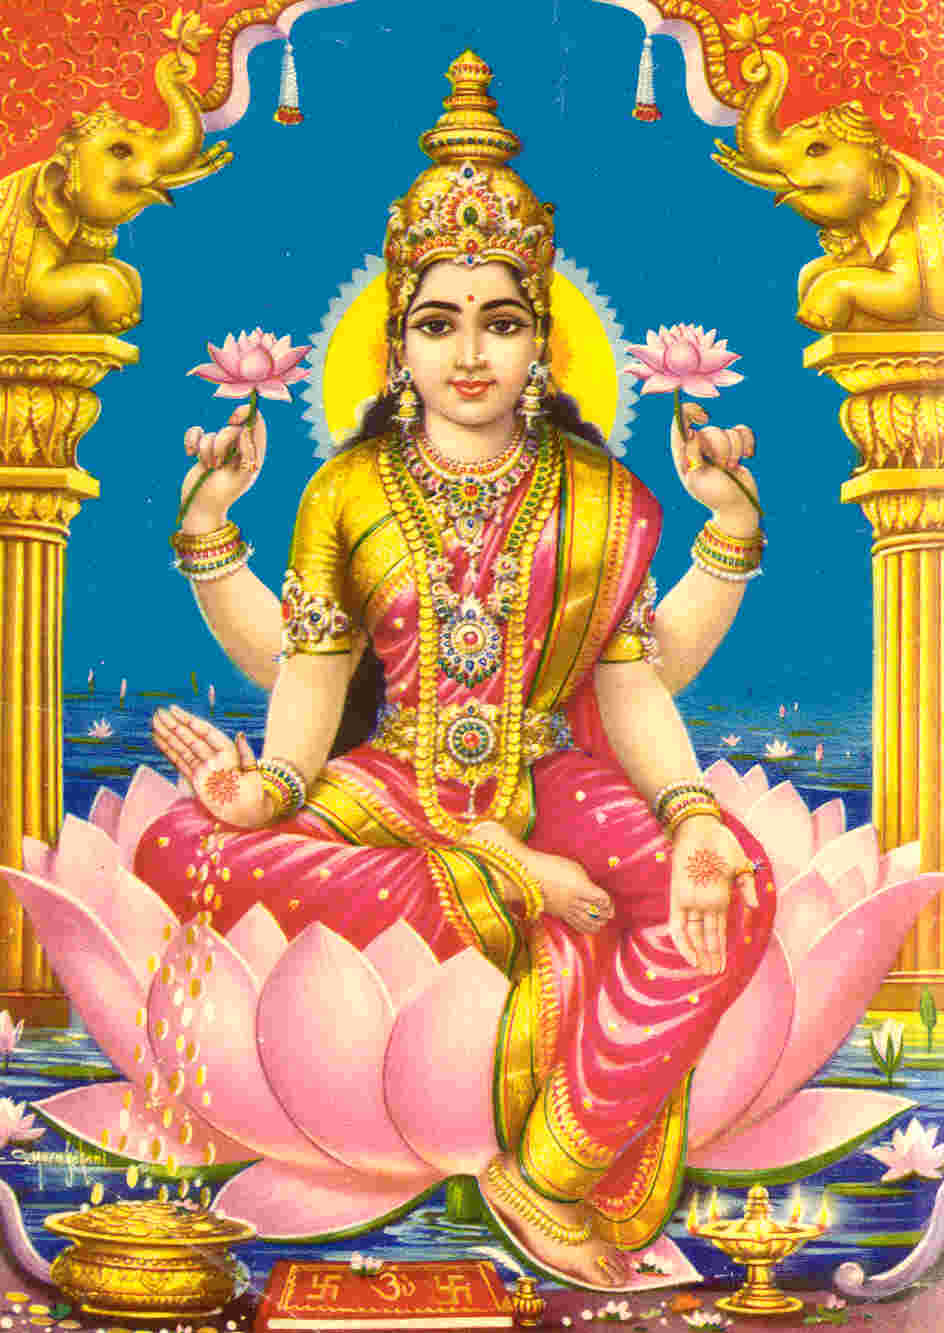 Another view of lakshmidevi the goddess of fortune